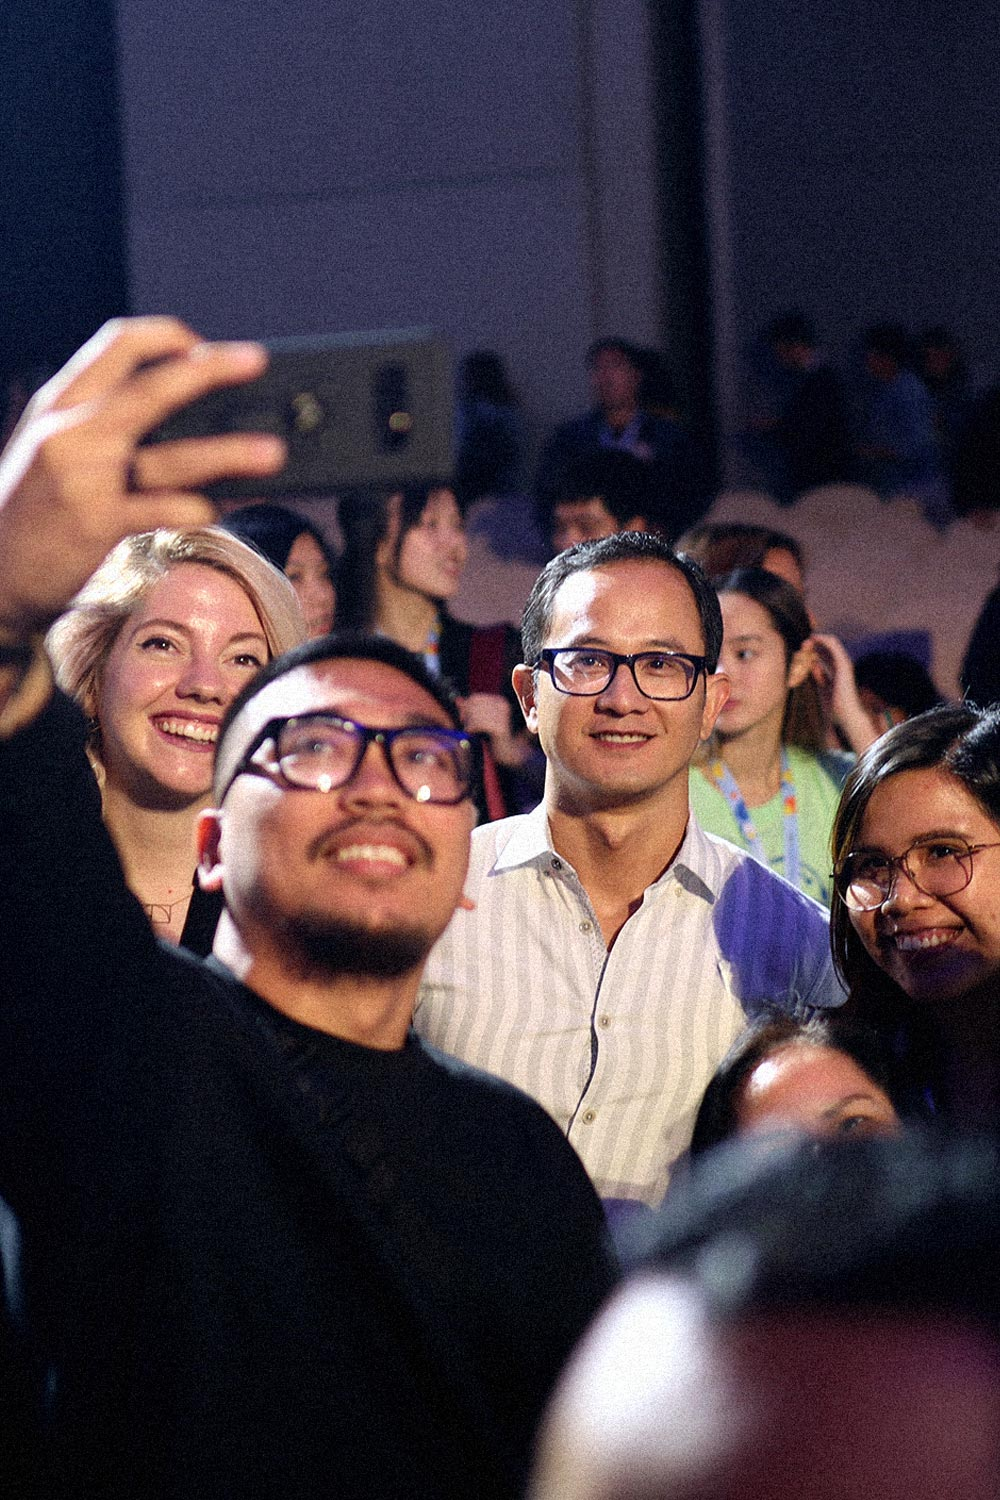 Audience taking photo with speaker from UX+ Conference 2019